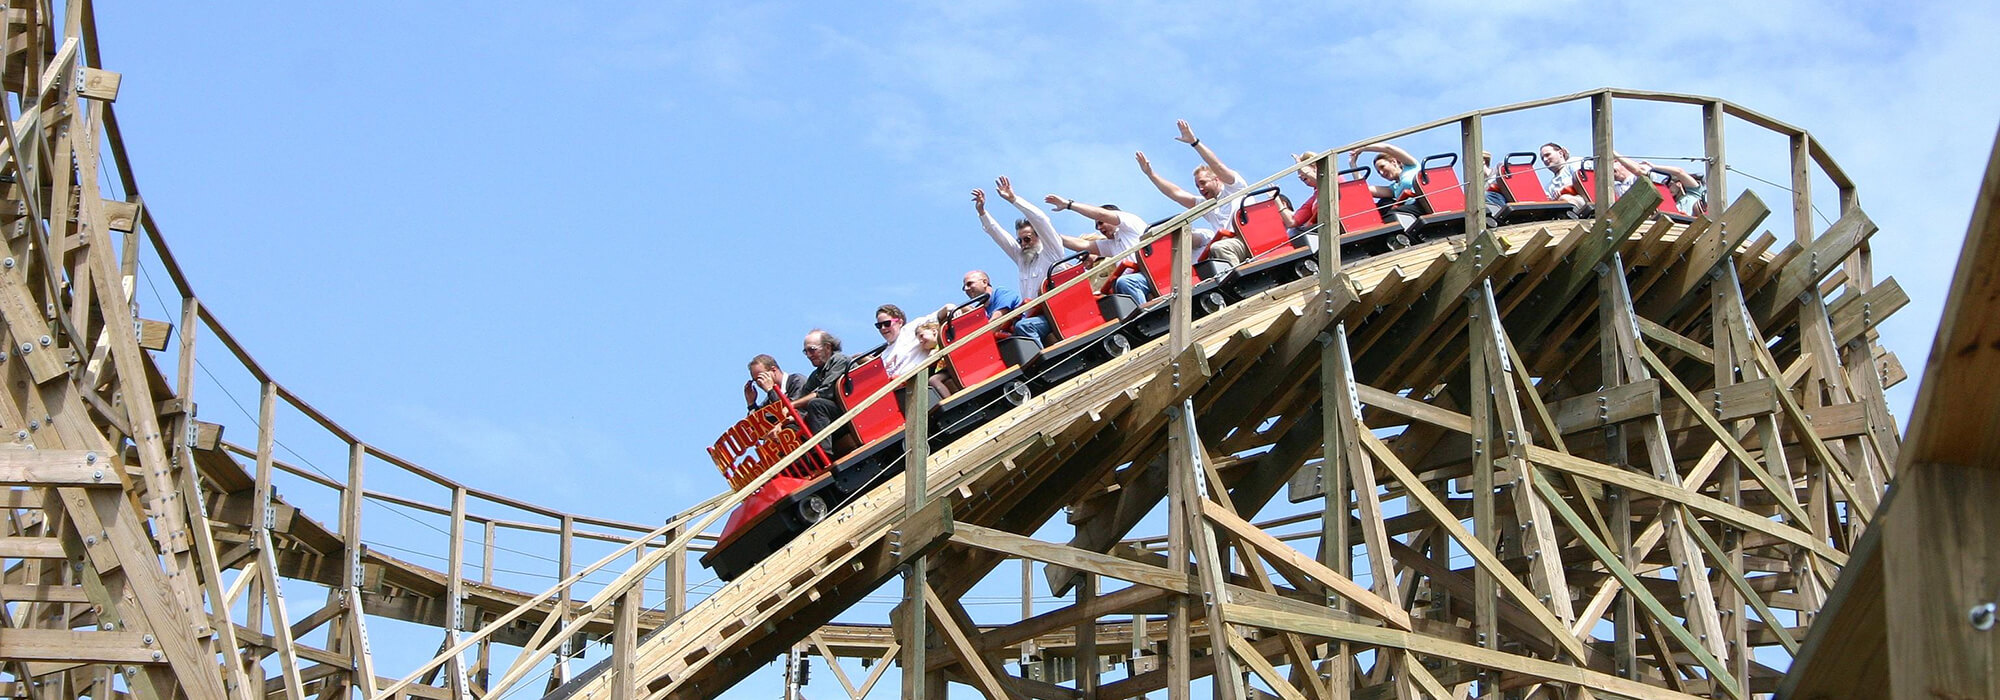 Kentucky Rumbler Roller Coaster | Beech Bend Amusement Park - Bowling Green, KY